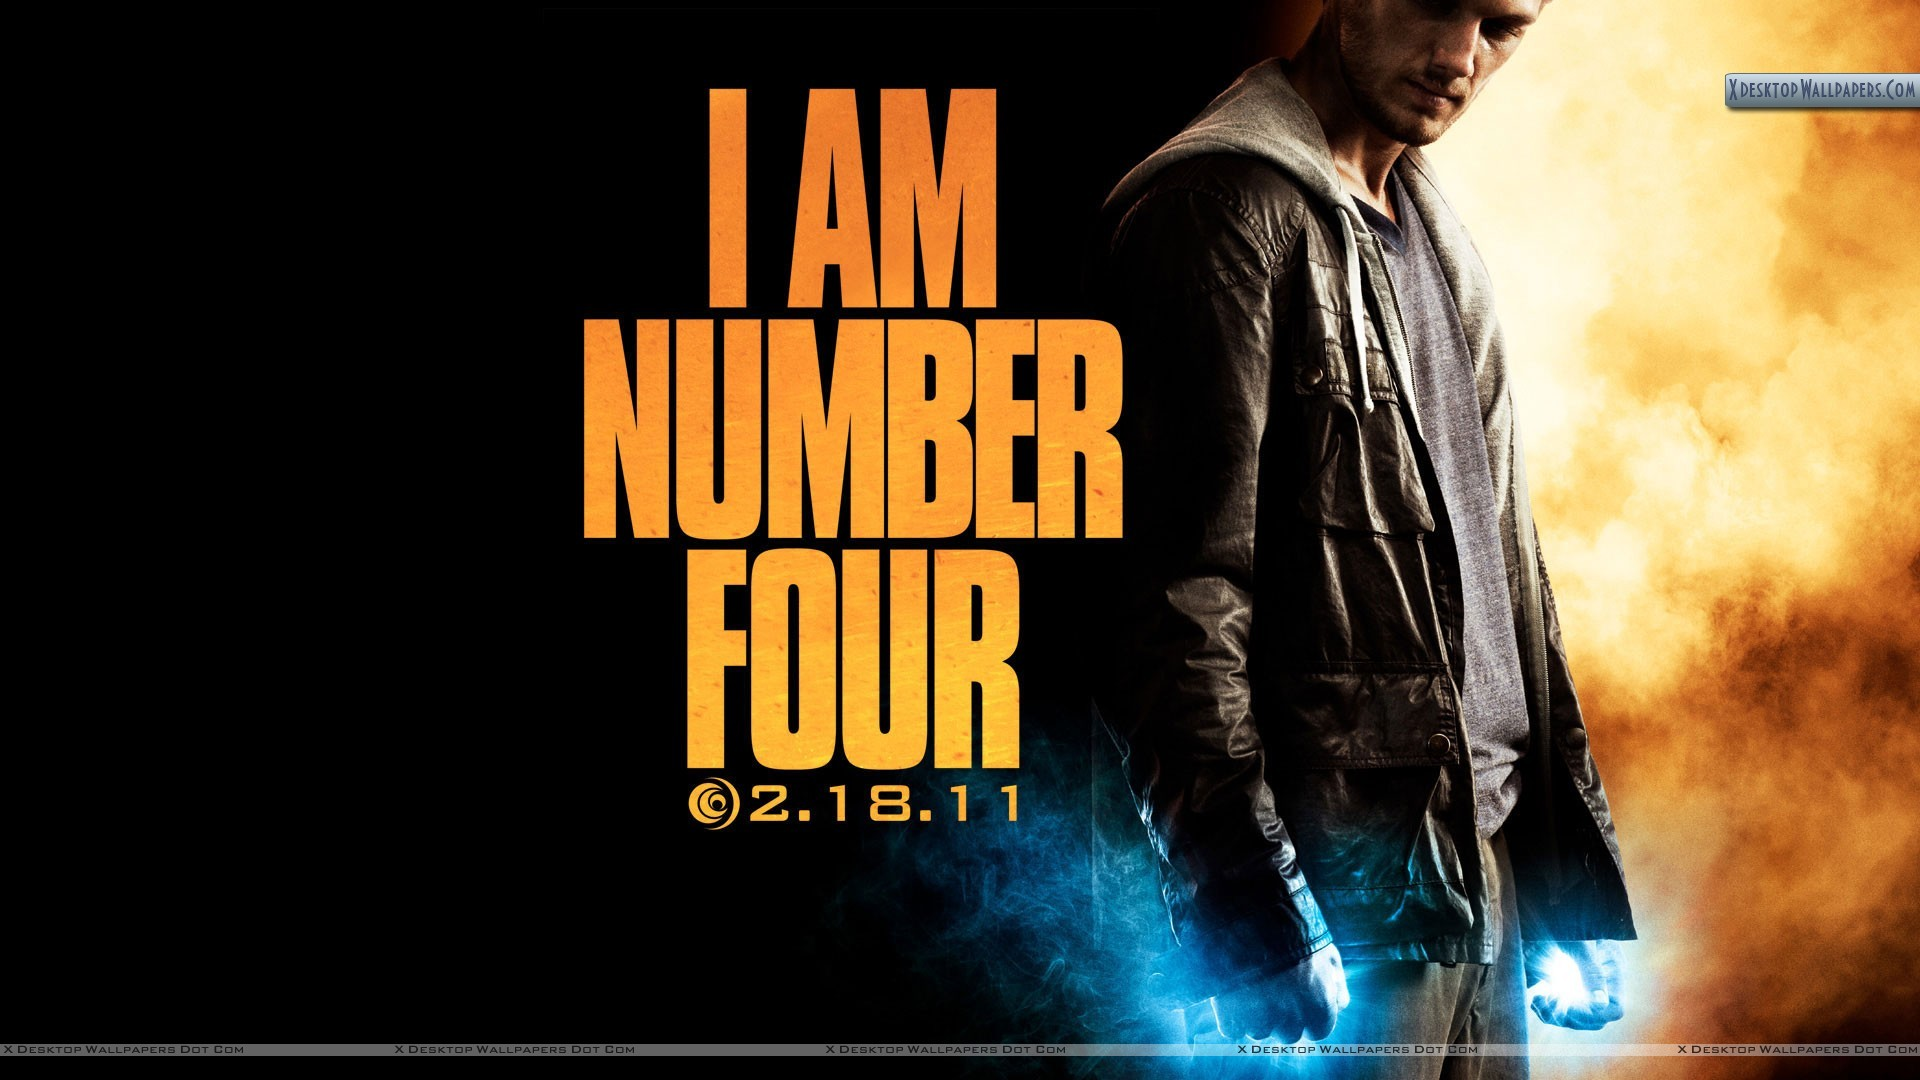 I Am Number Four 2011 Movie Poster Wallpaper I Am Number Four Movie Poster